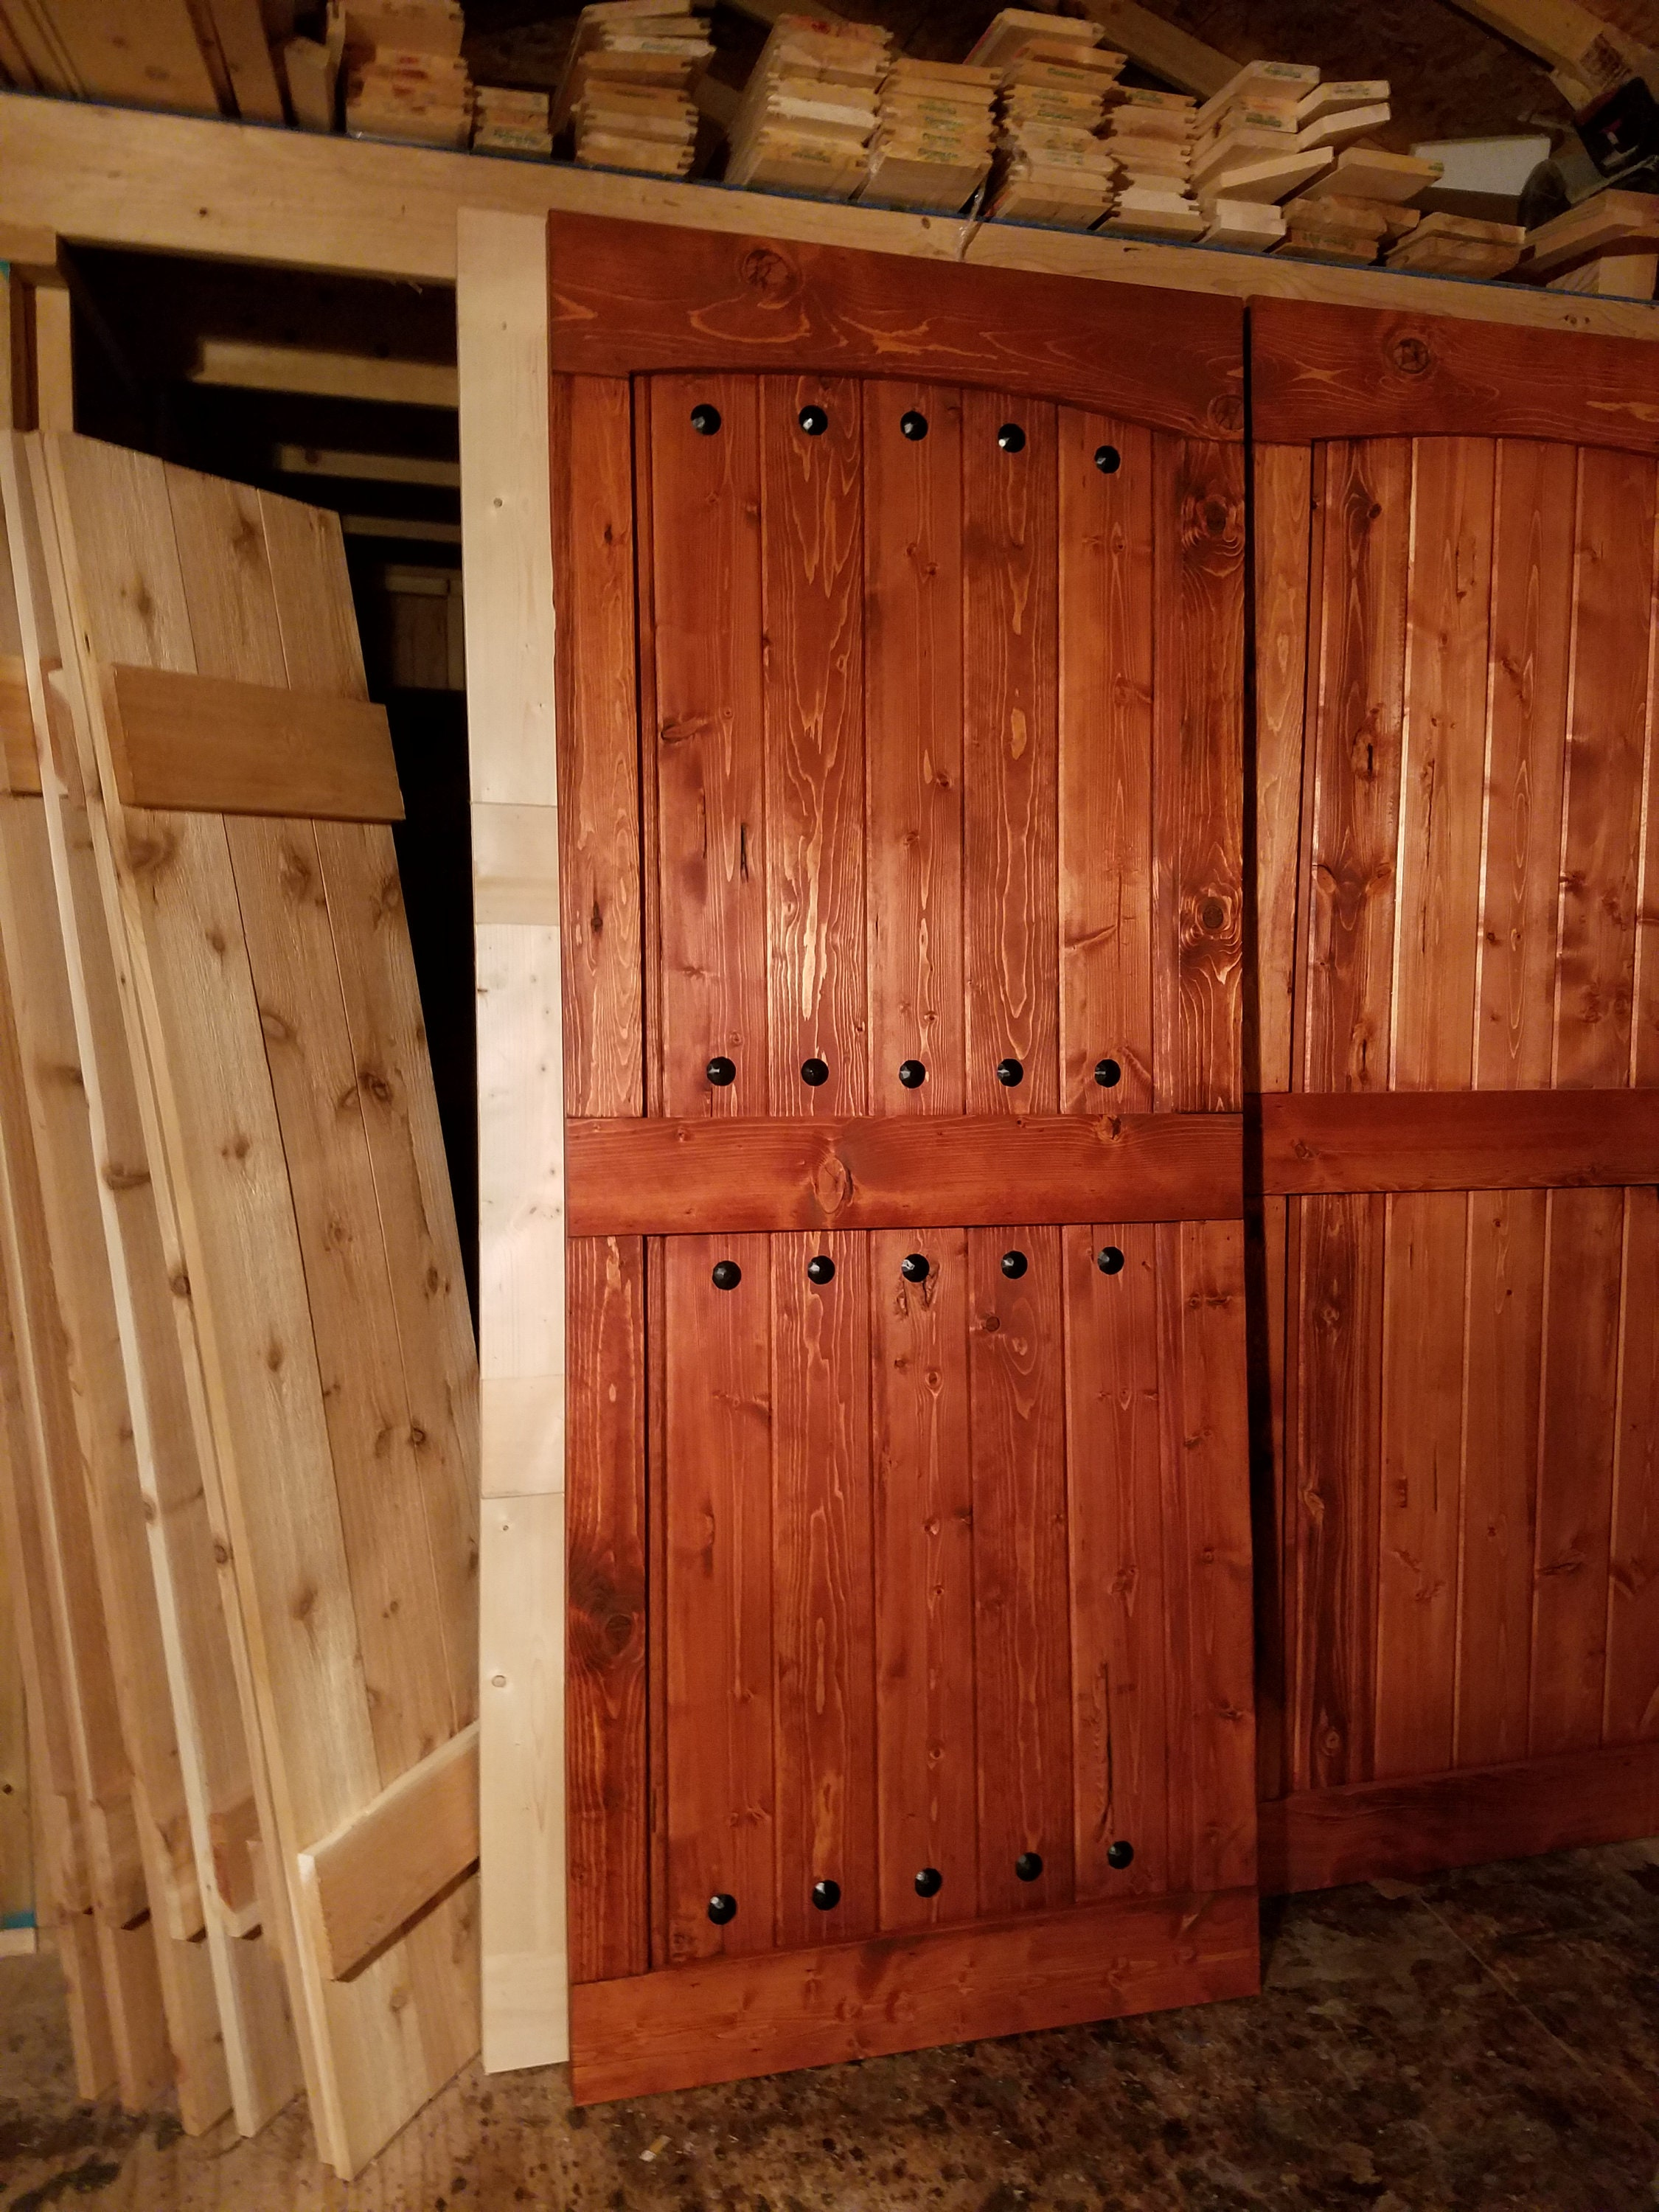 Arched Mid Bar Barn Door   Sliding Wooden Door   Barn Door Hardware  Available   Farmhouse Door   Rustic Interior Barn Door   Barn Door